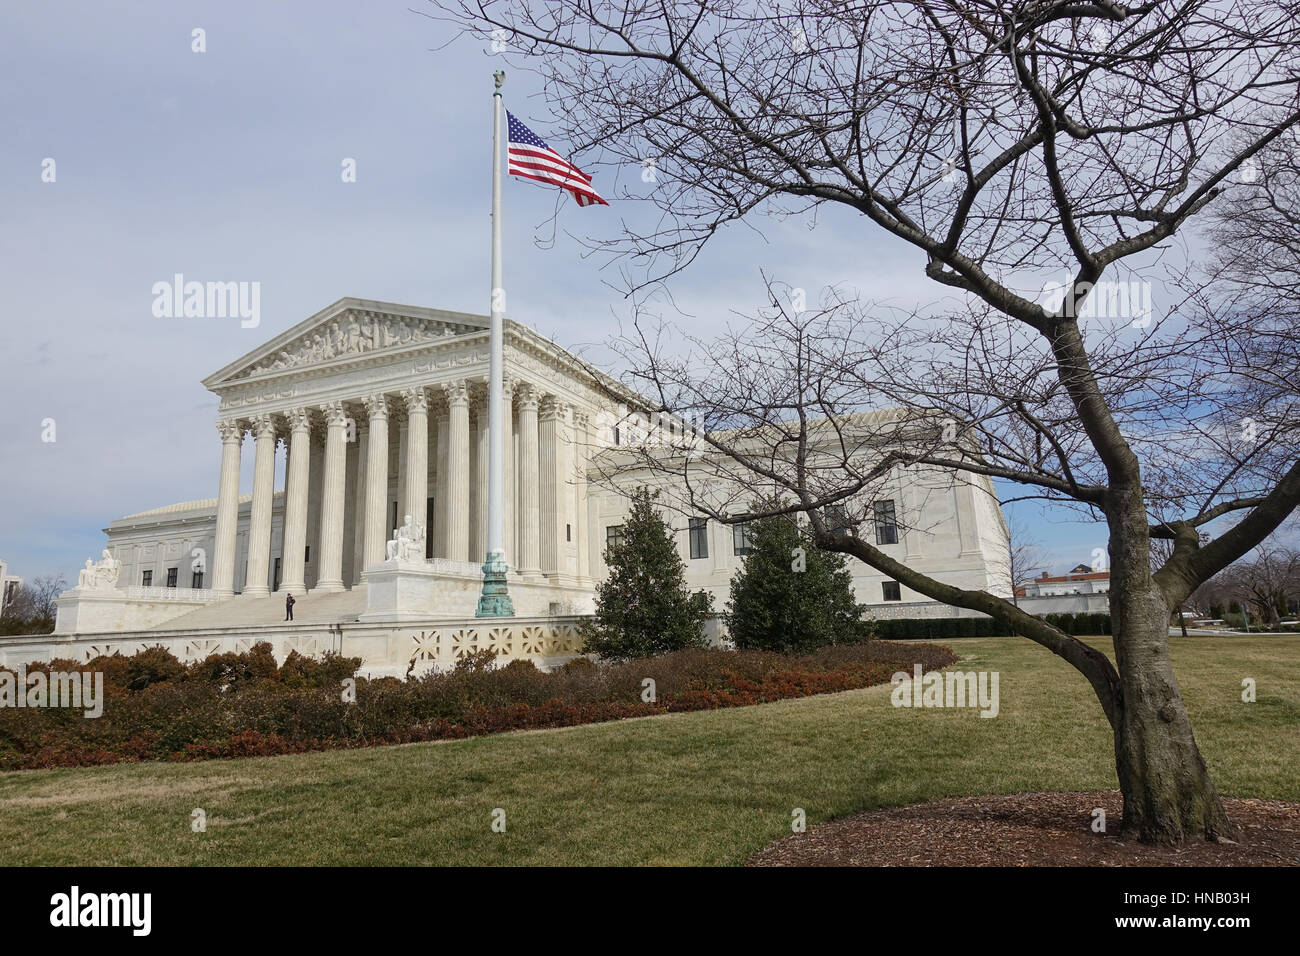 Wintry US Supreme Court building, wide shot, American flag flying - Stock Image